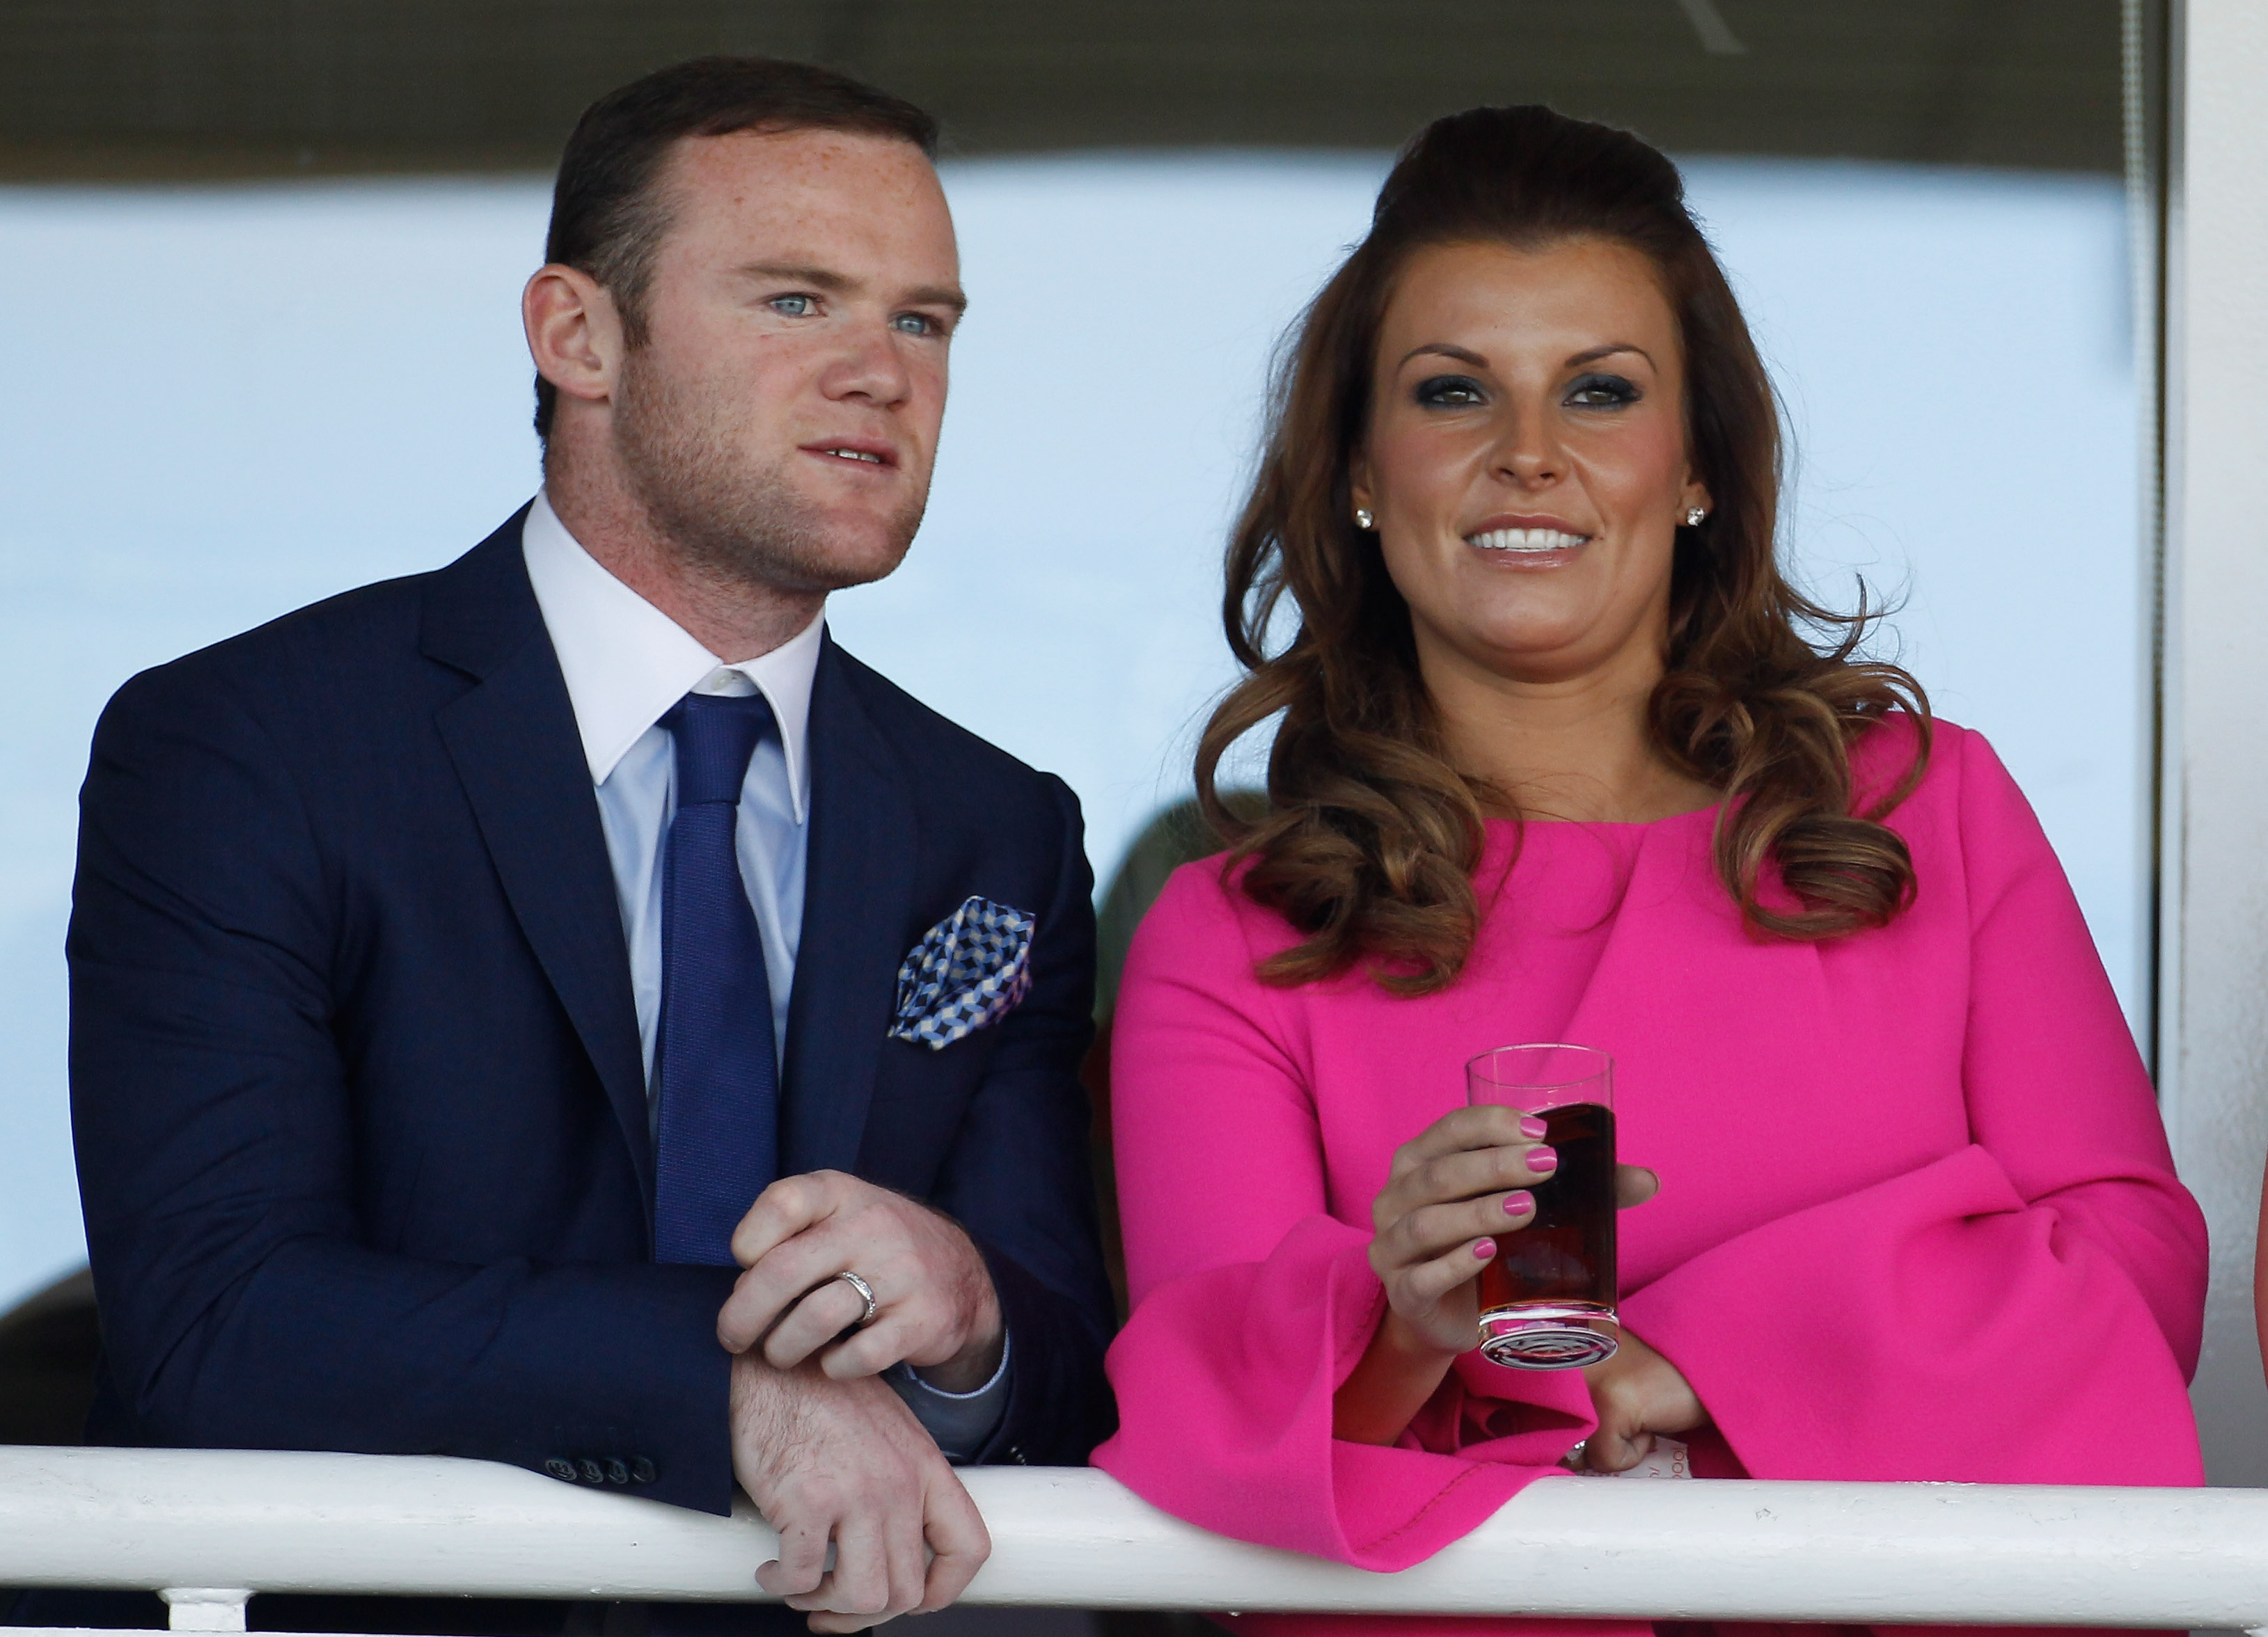 Coleen Rooney ready to 'hit the roof' as Wayne Rooney accepts lift from barmaid after 10-hour bender